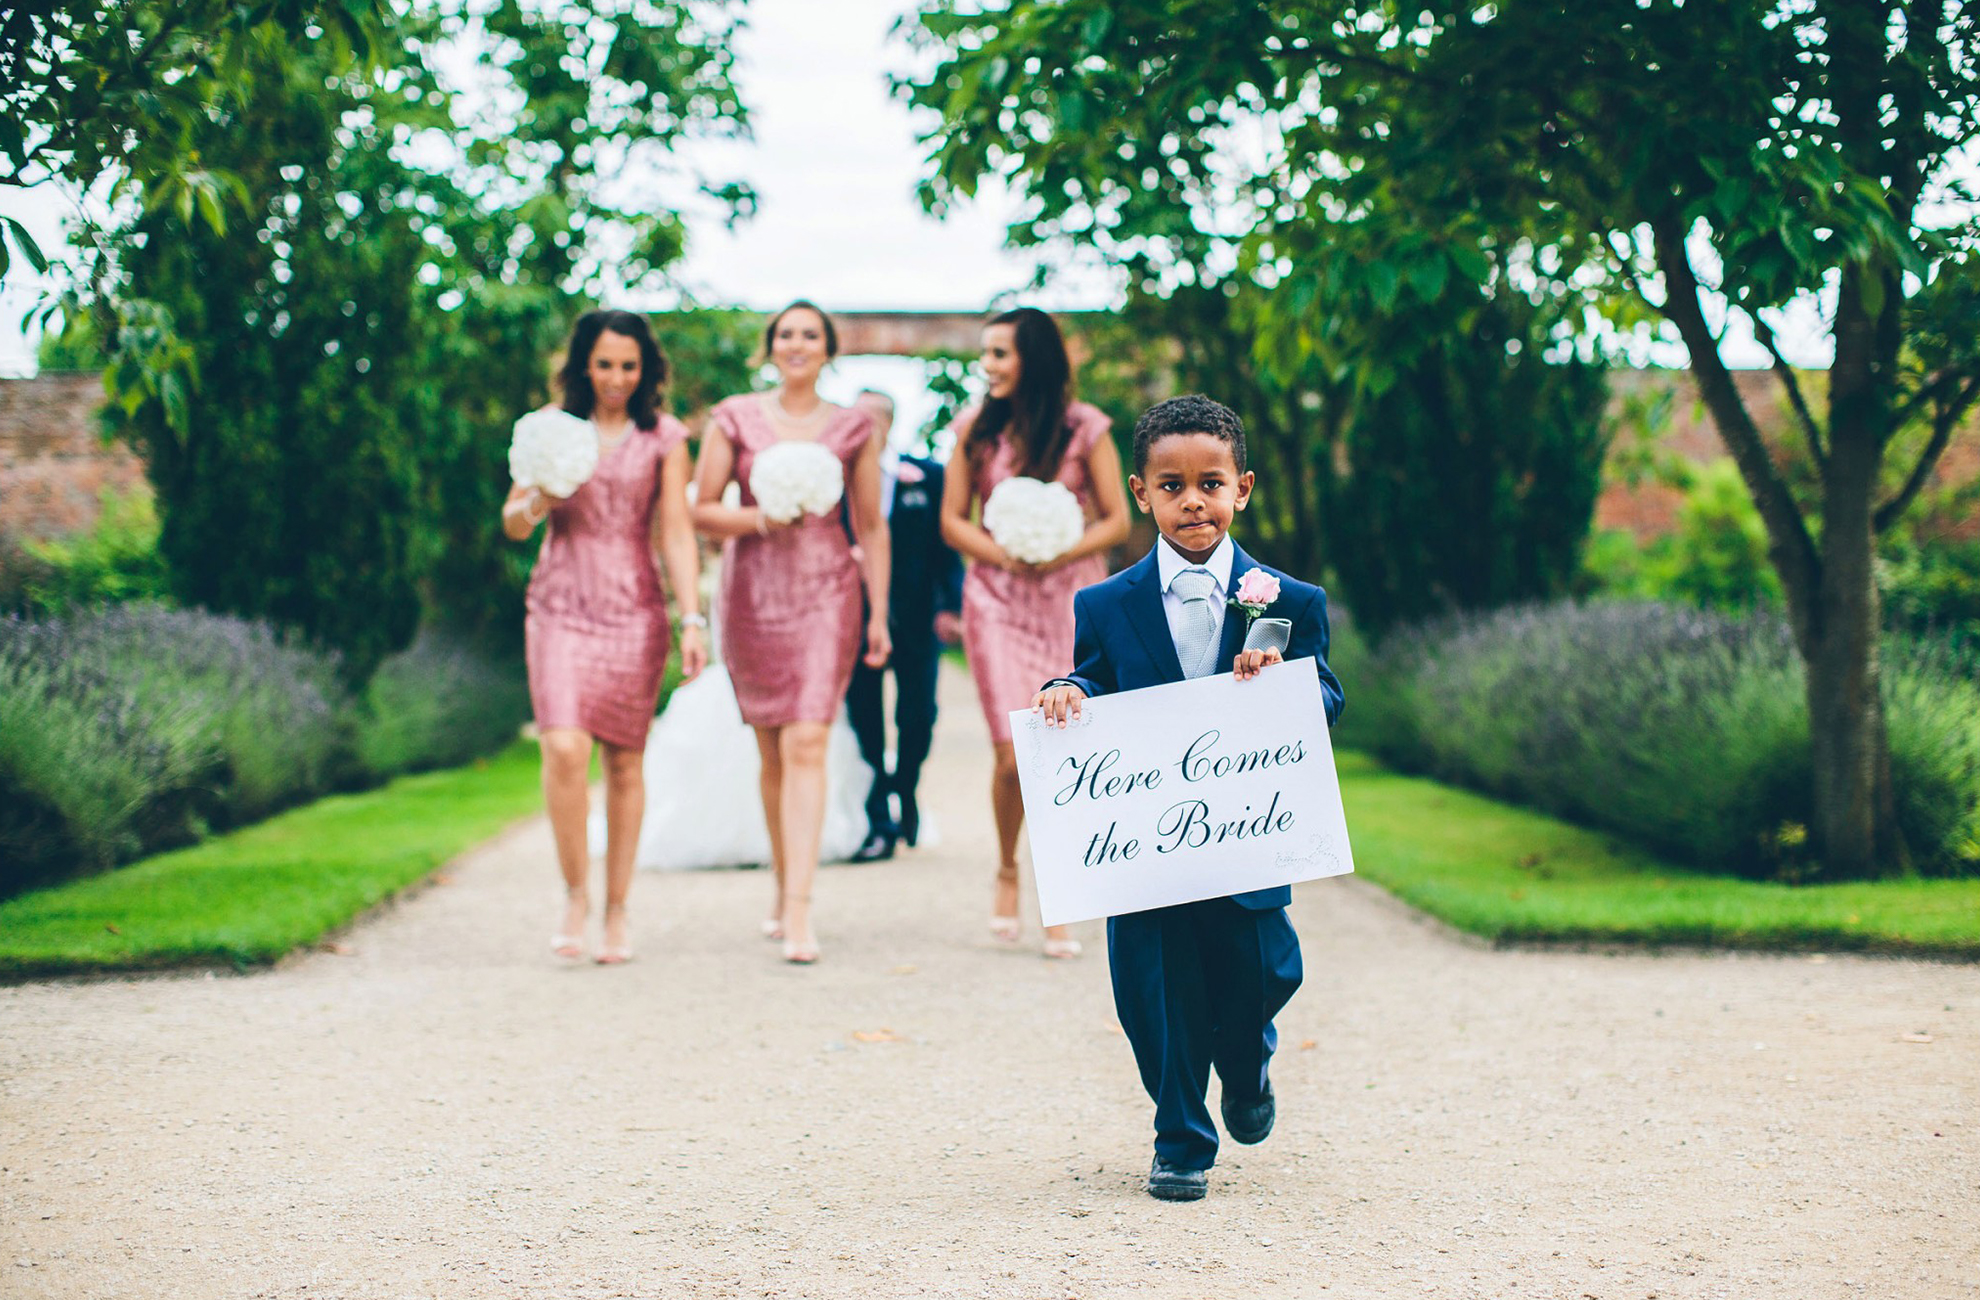 Bridesmaids and page boy with sign walking through the gardens at Combermere Abbey wedding venue